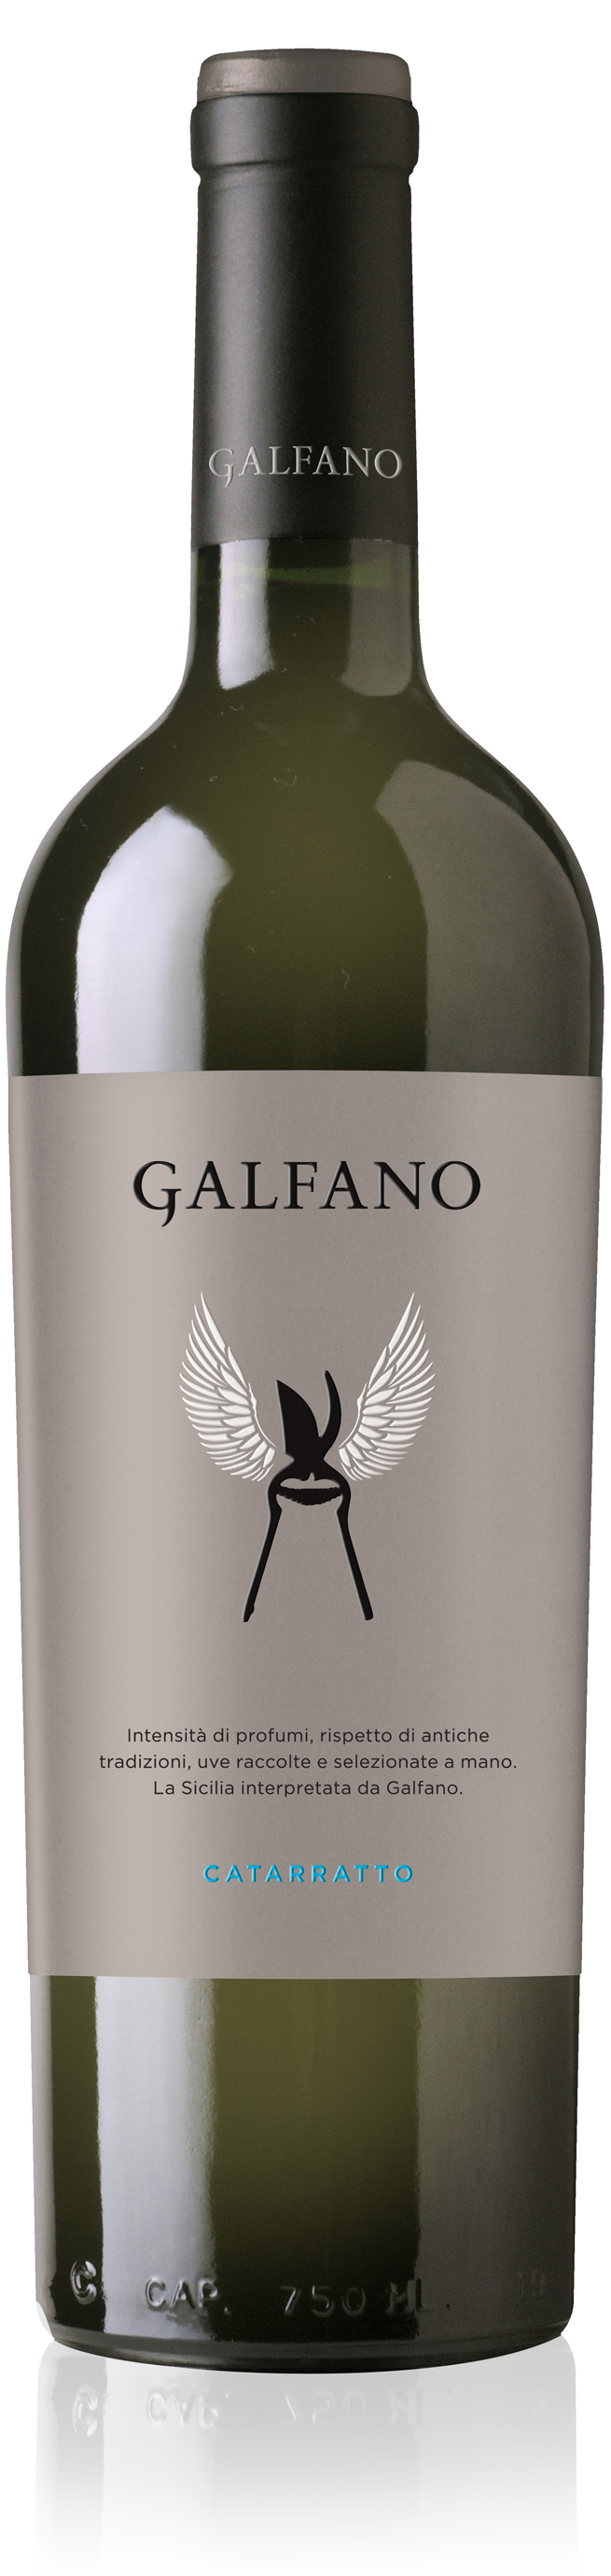 galfano wine bottle large